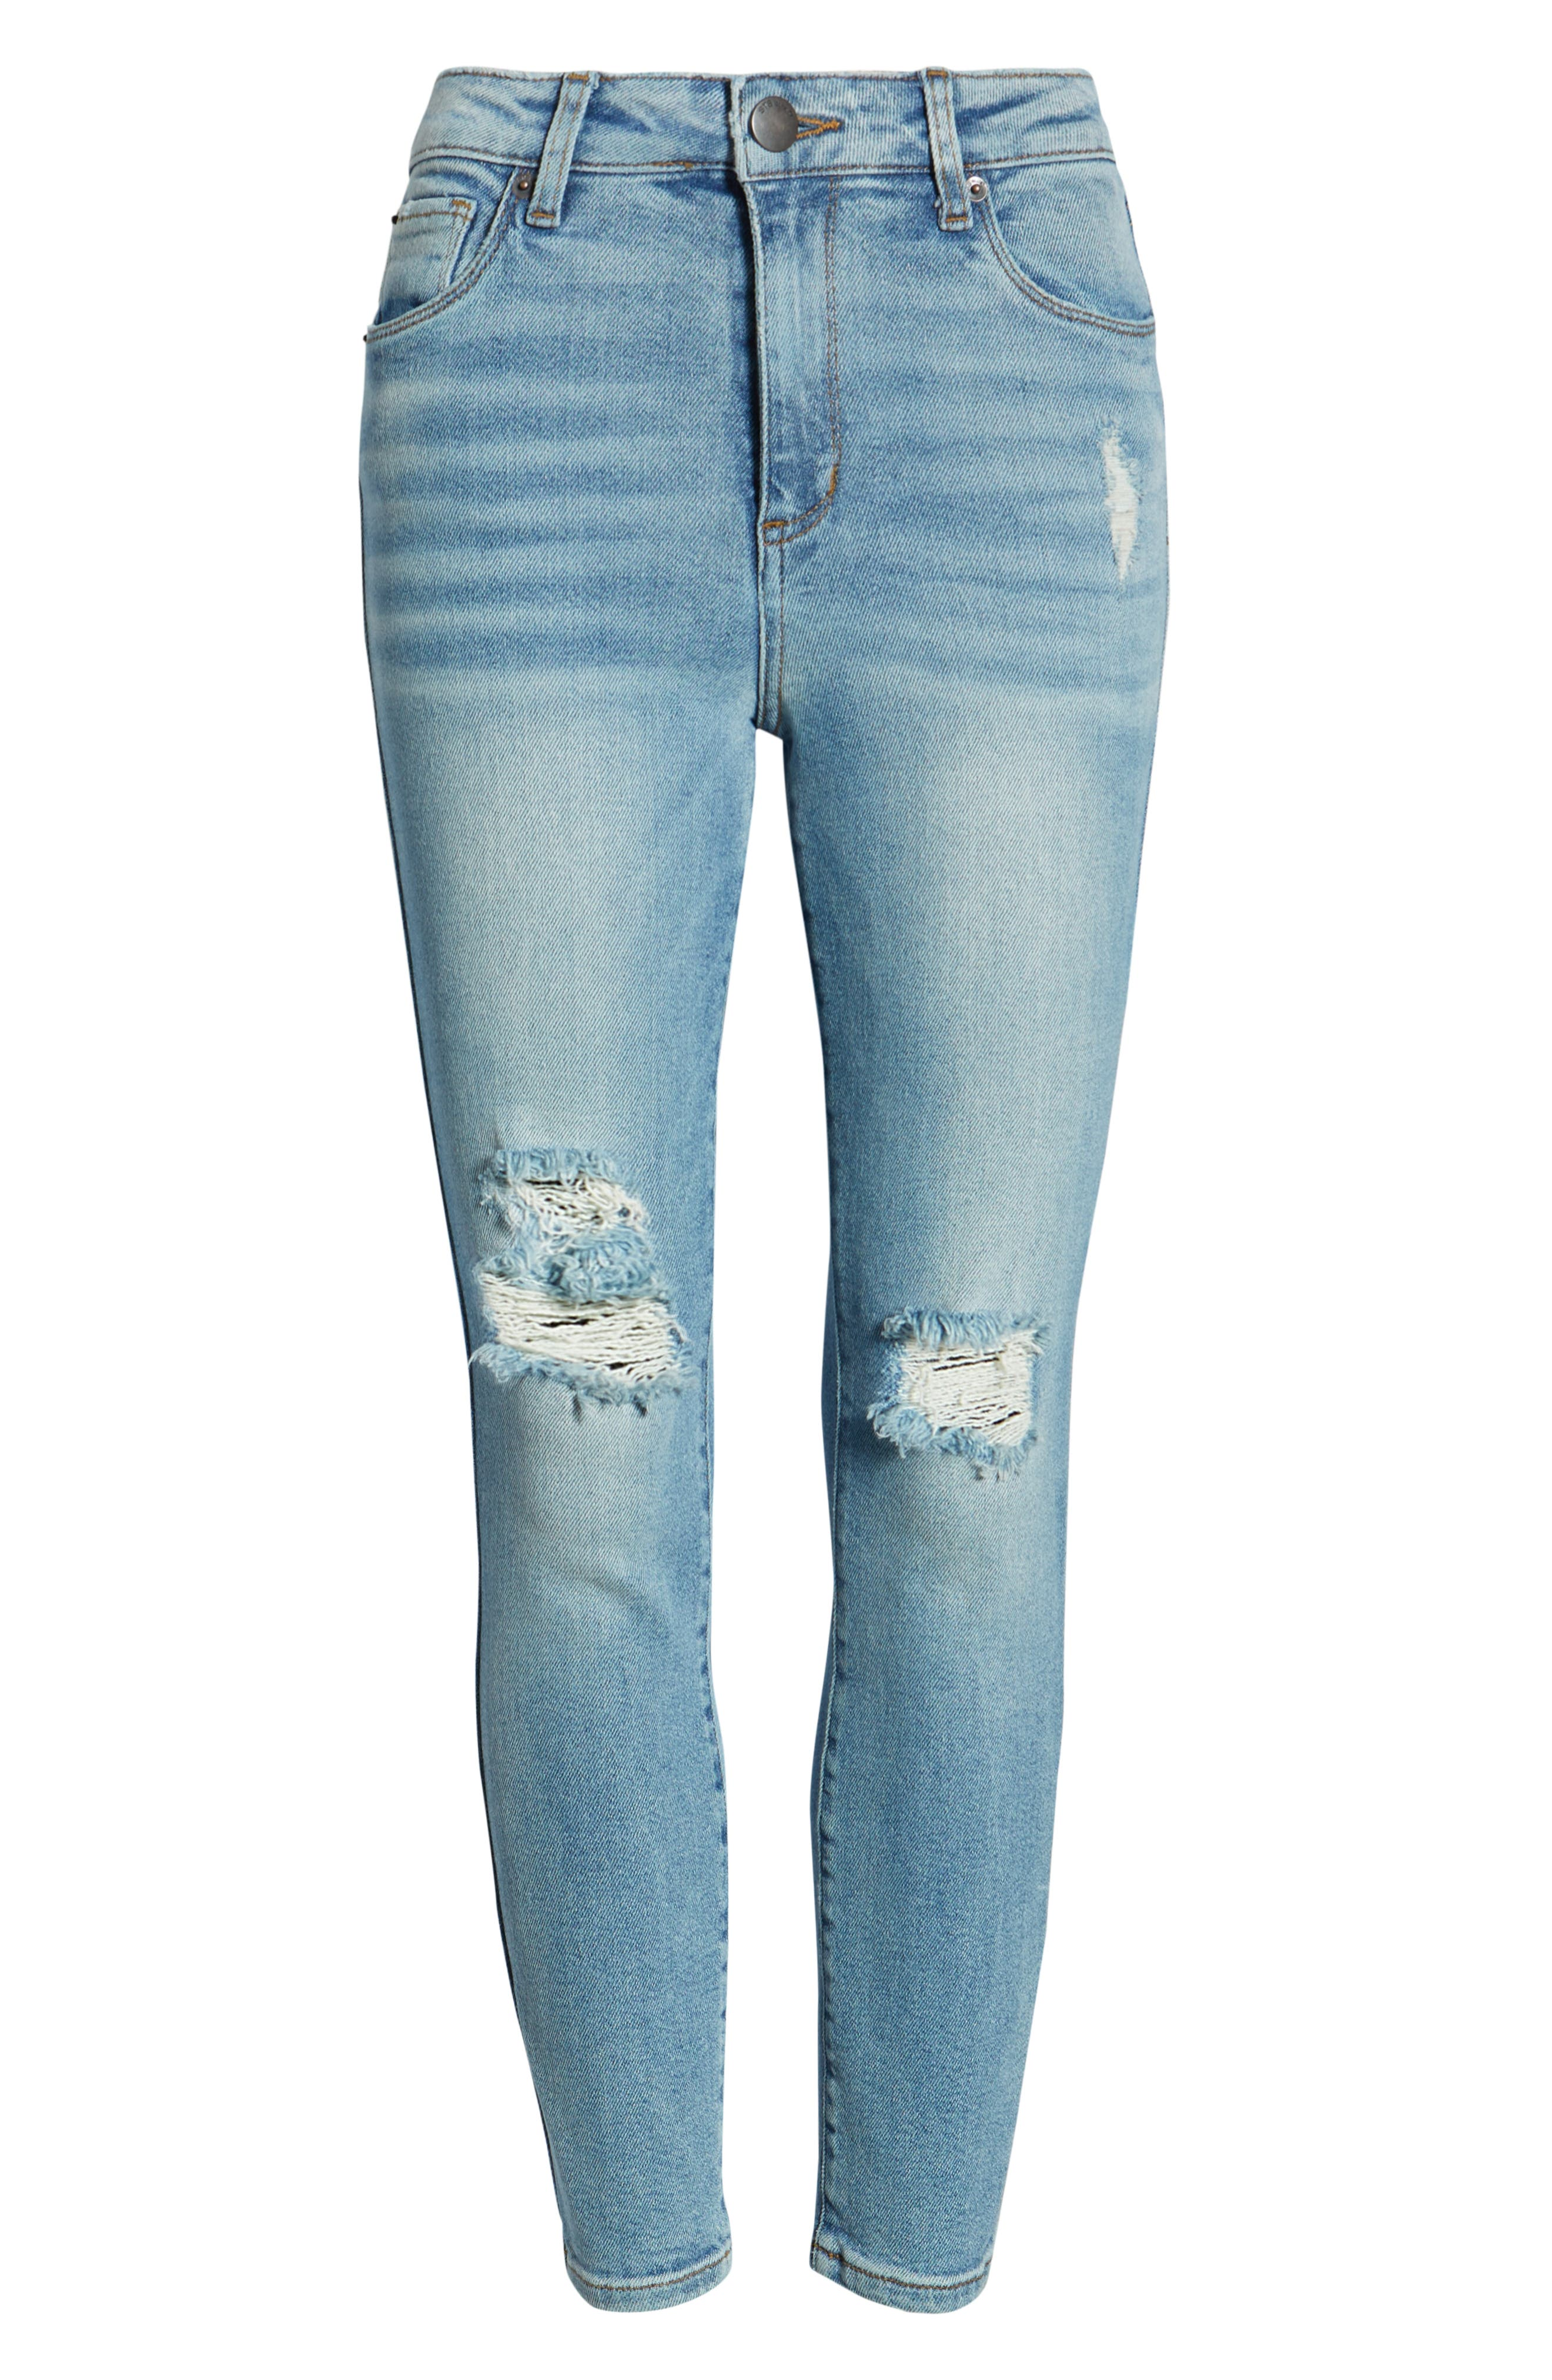 STS BLUE, Brie High Waist Ripped Skinny Jeans, Alternate thumbnail 7, color, 400